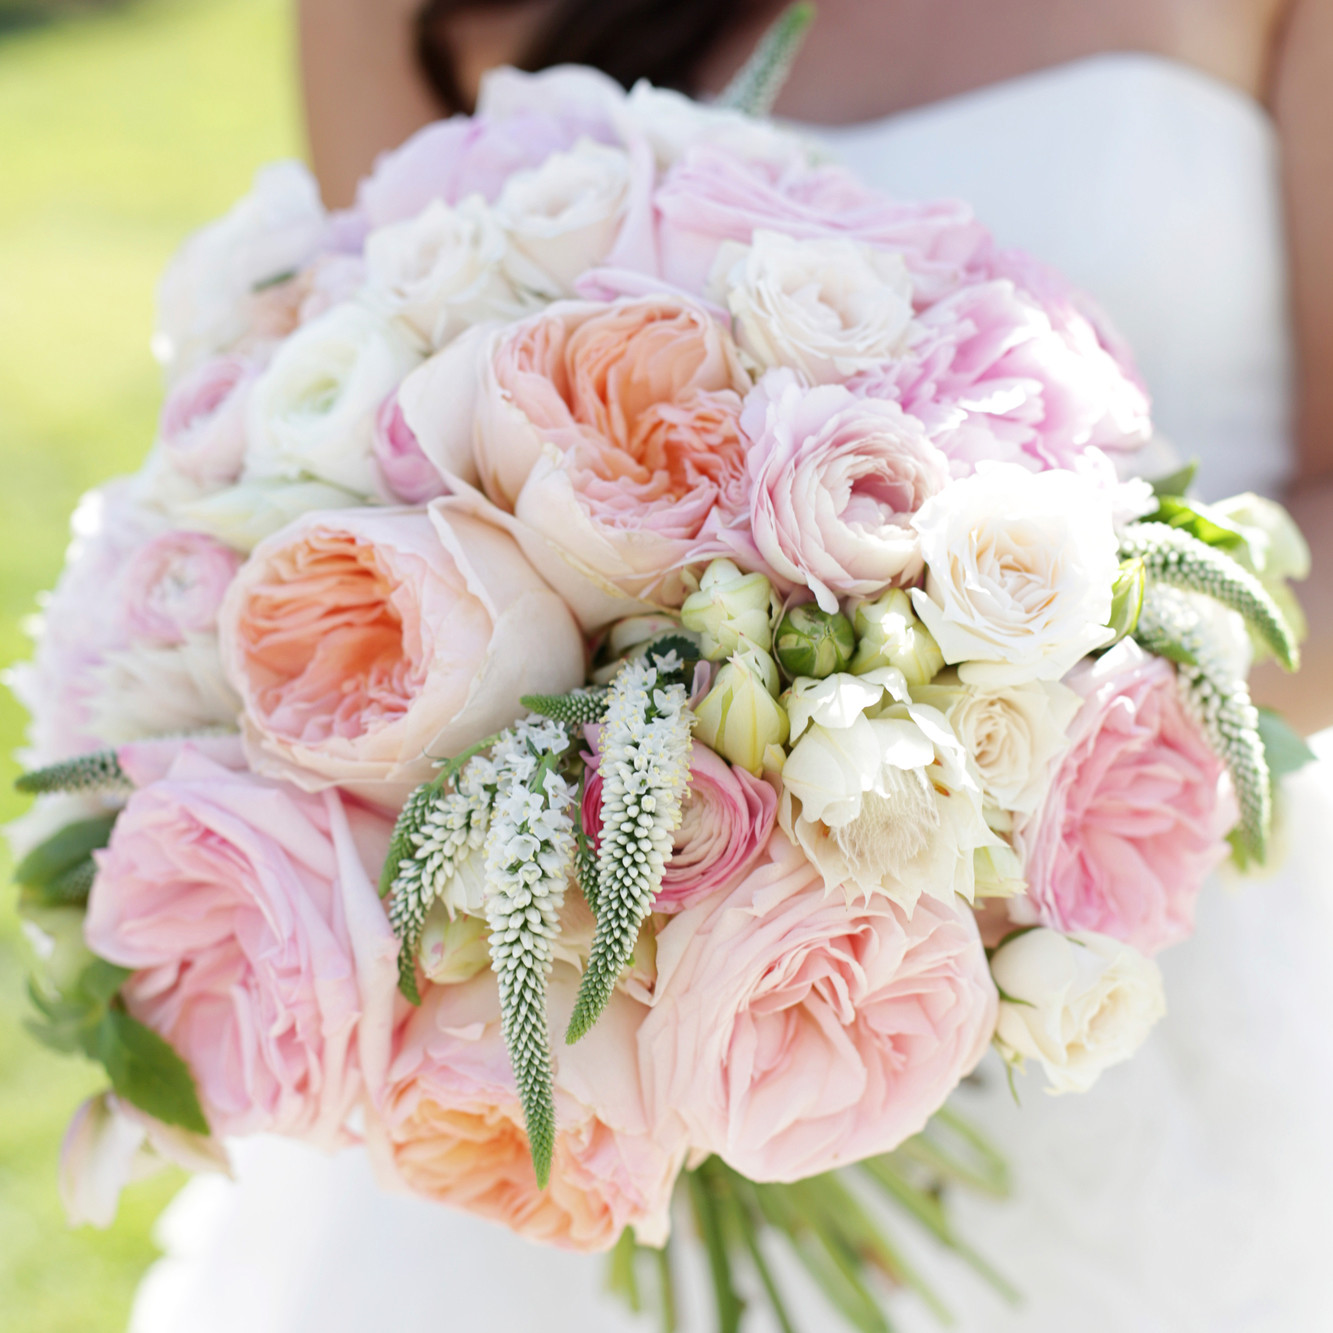 Wedding Flowers: Our Favorite Rose Wedding Bouquets